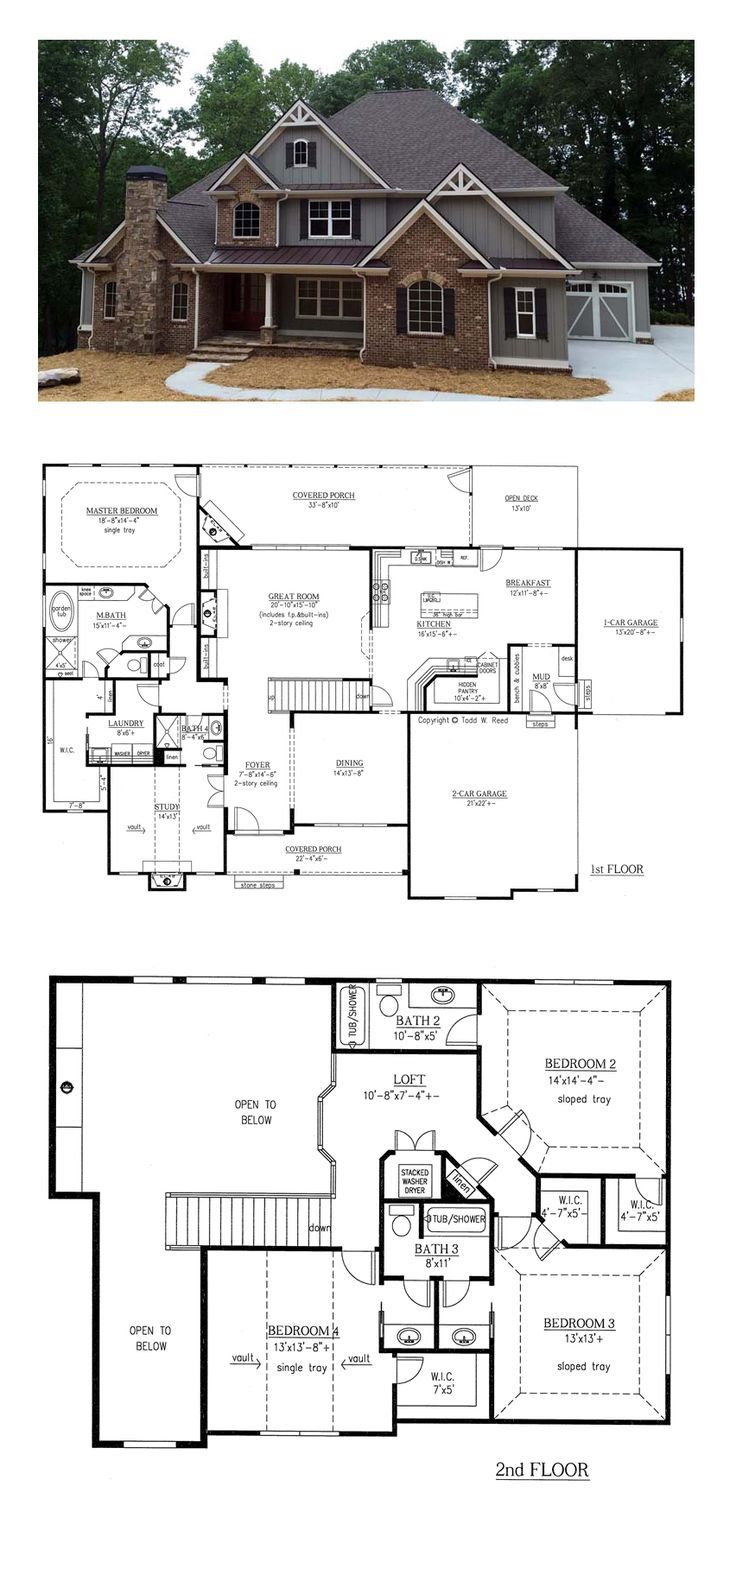 French country house plan 50263 | Total living space: 3290 sq. Ft., 4 bedrooms … – 100+ Easy and Stylish DIY Home Decor Ideas